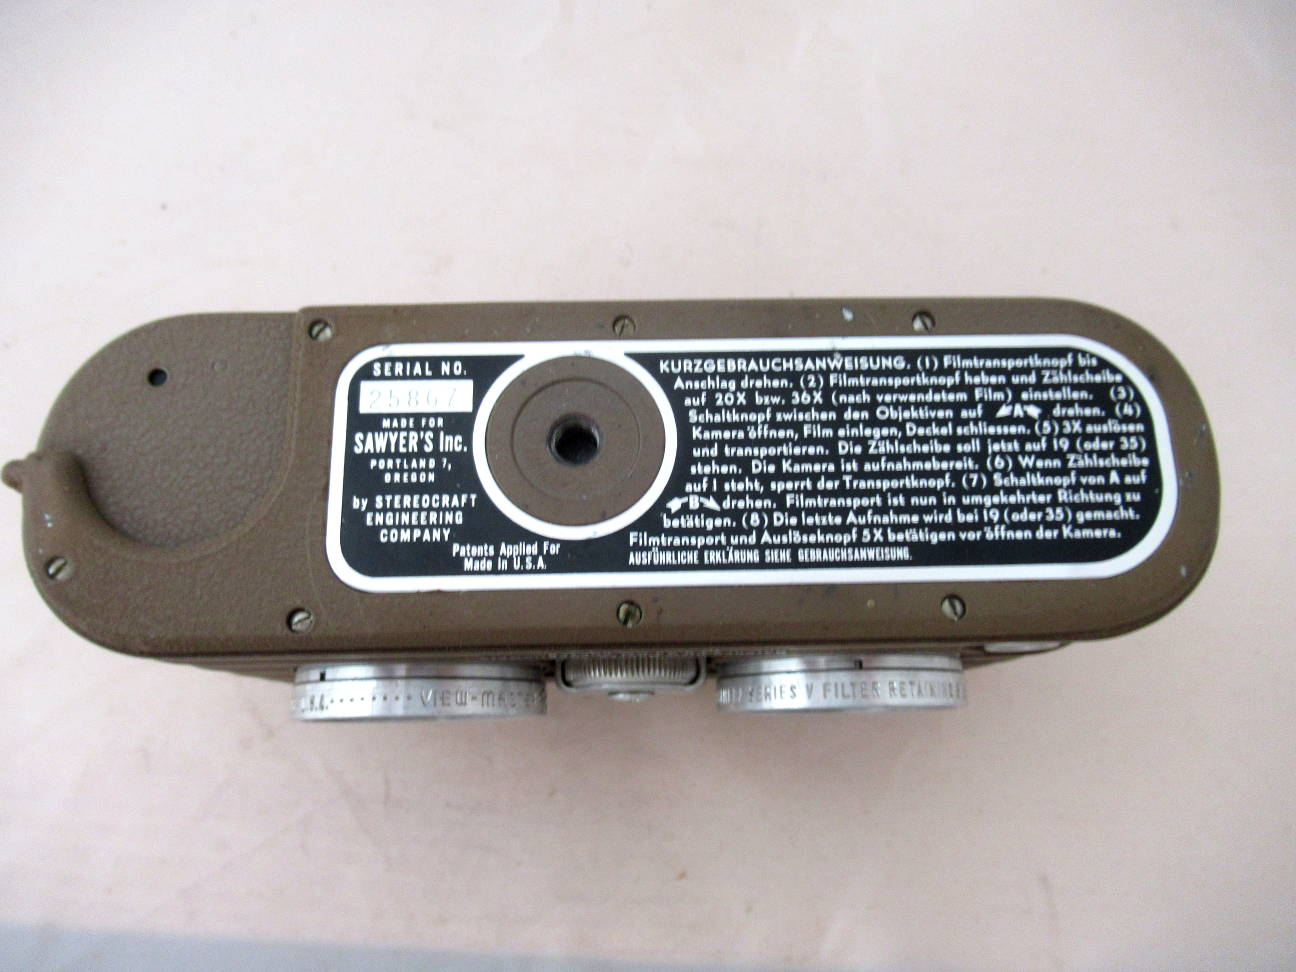 jpgodd/viewmaster_personel_stereo_IMG_0595.JPG